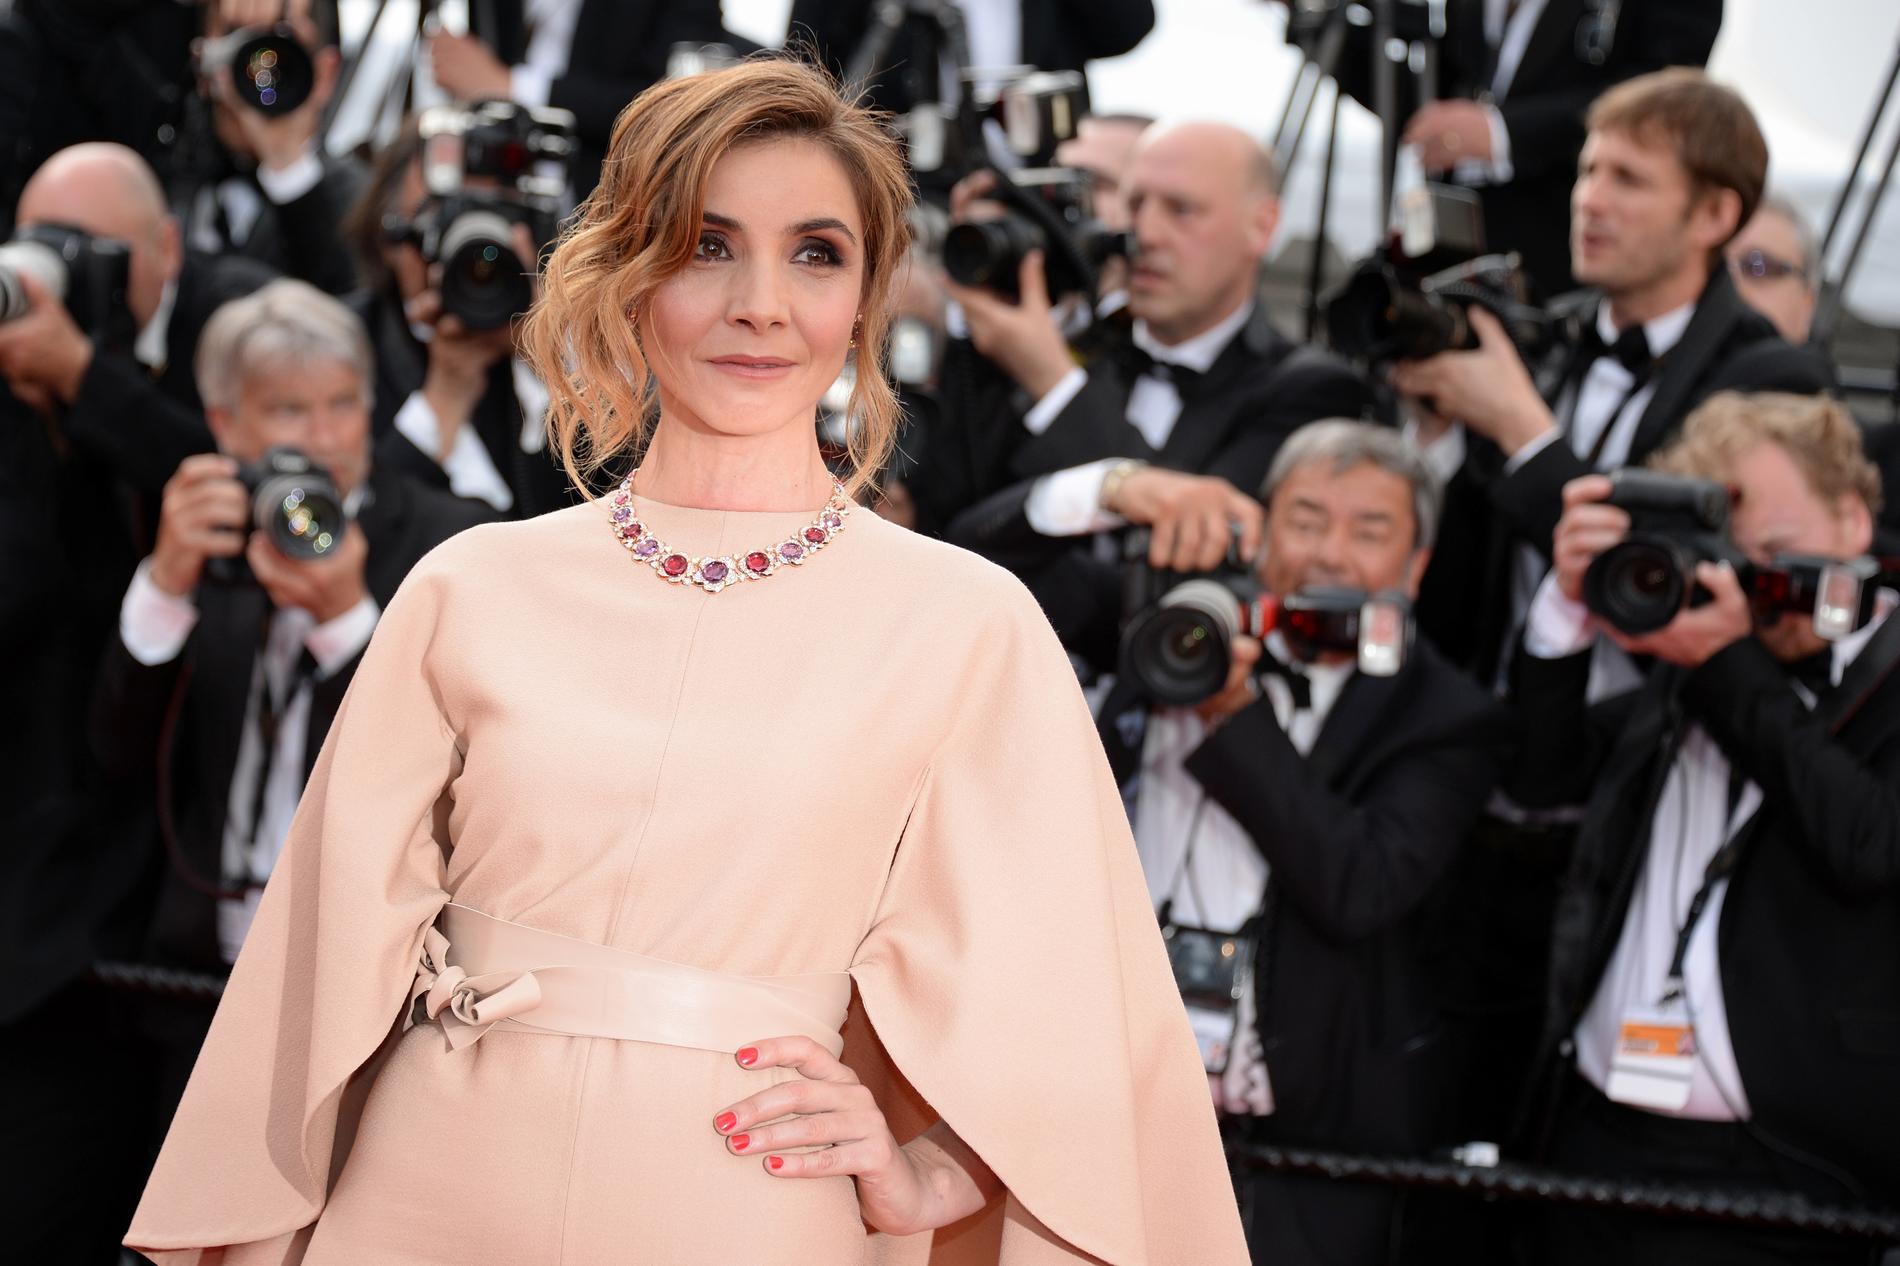 Snapchat Clotilde Courau naked (16 photo), Pussy, Fappening, Boobs, legs 2018